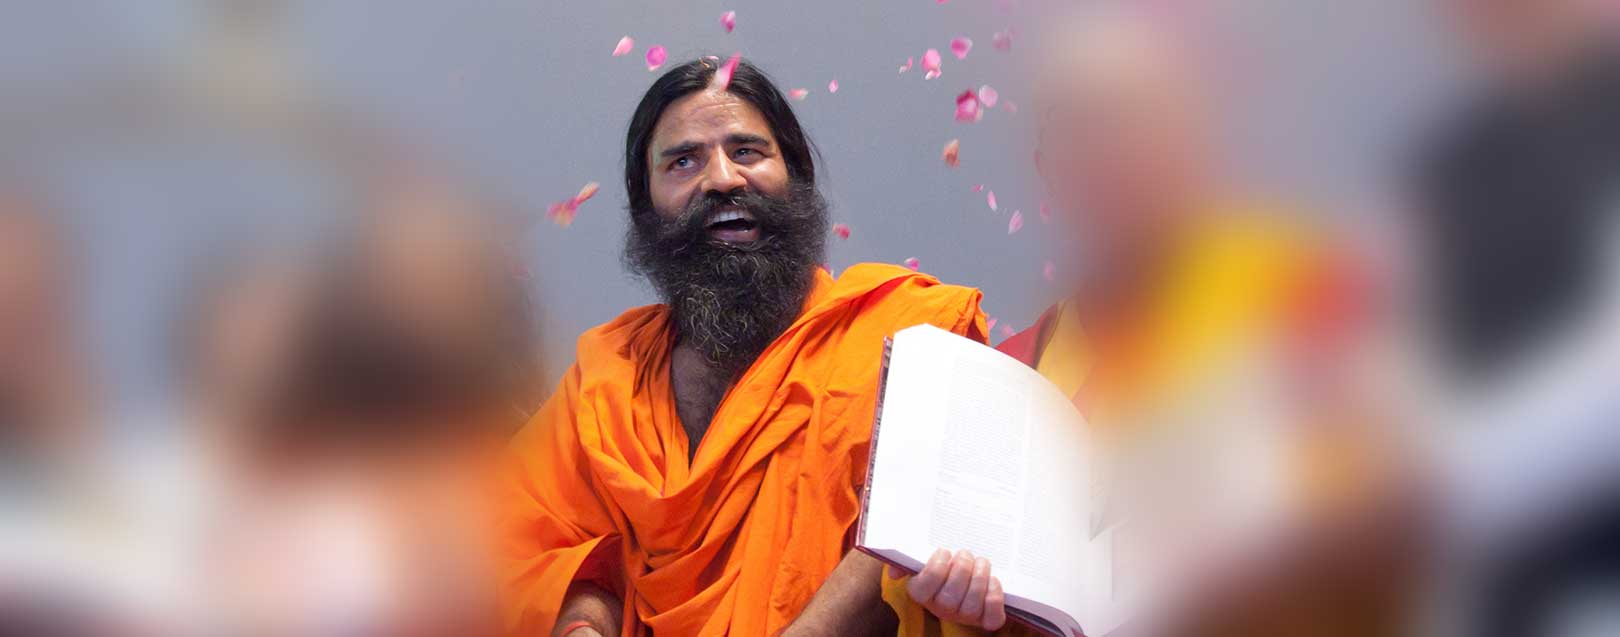 Patanjali to invest Rs. 1300 cr in Assam